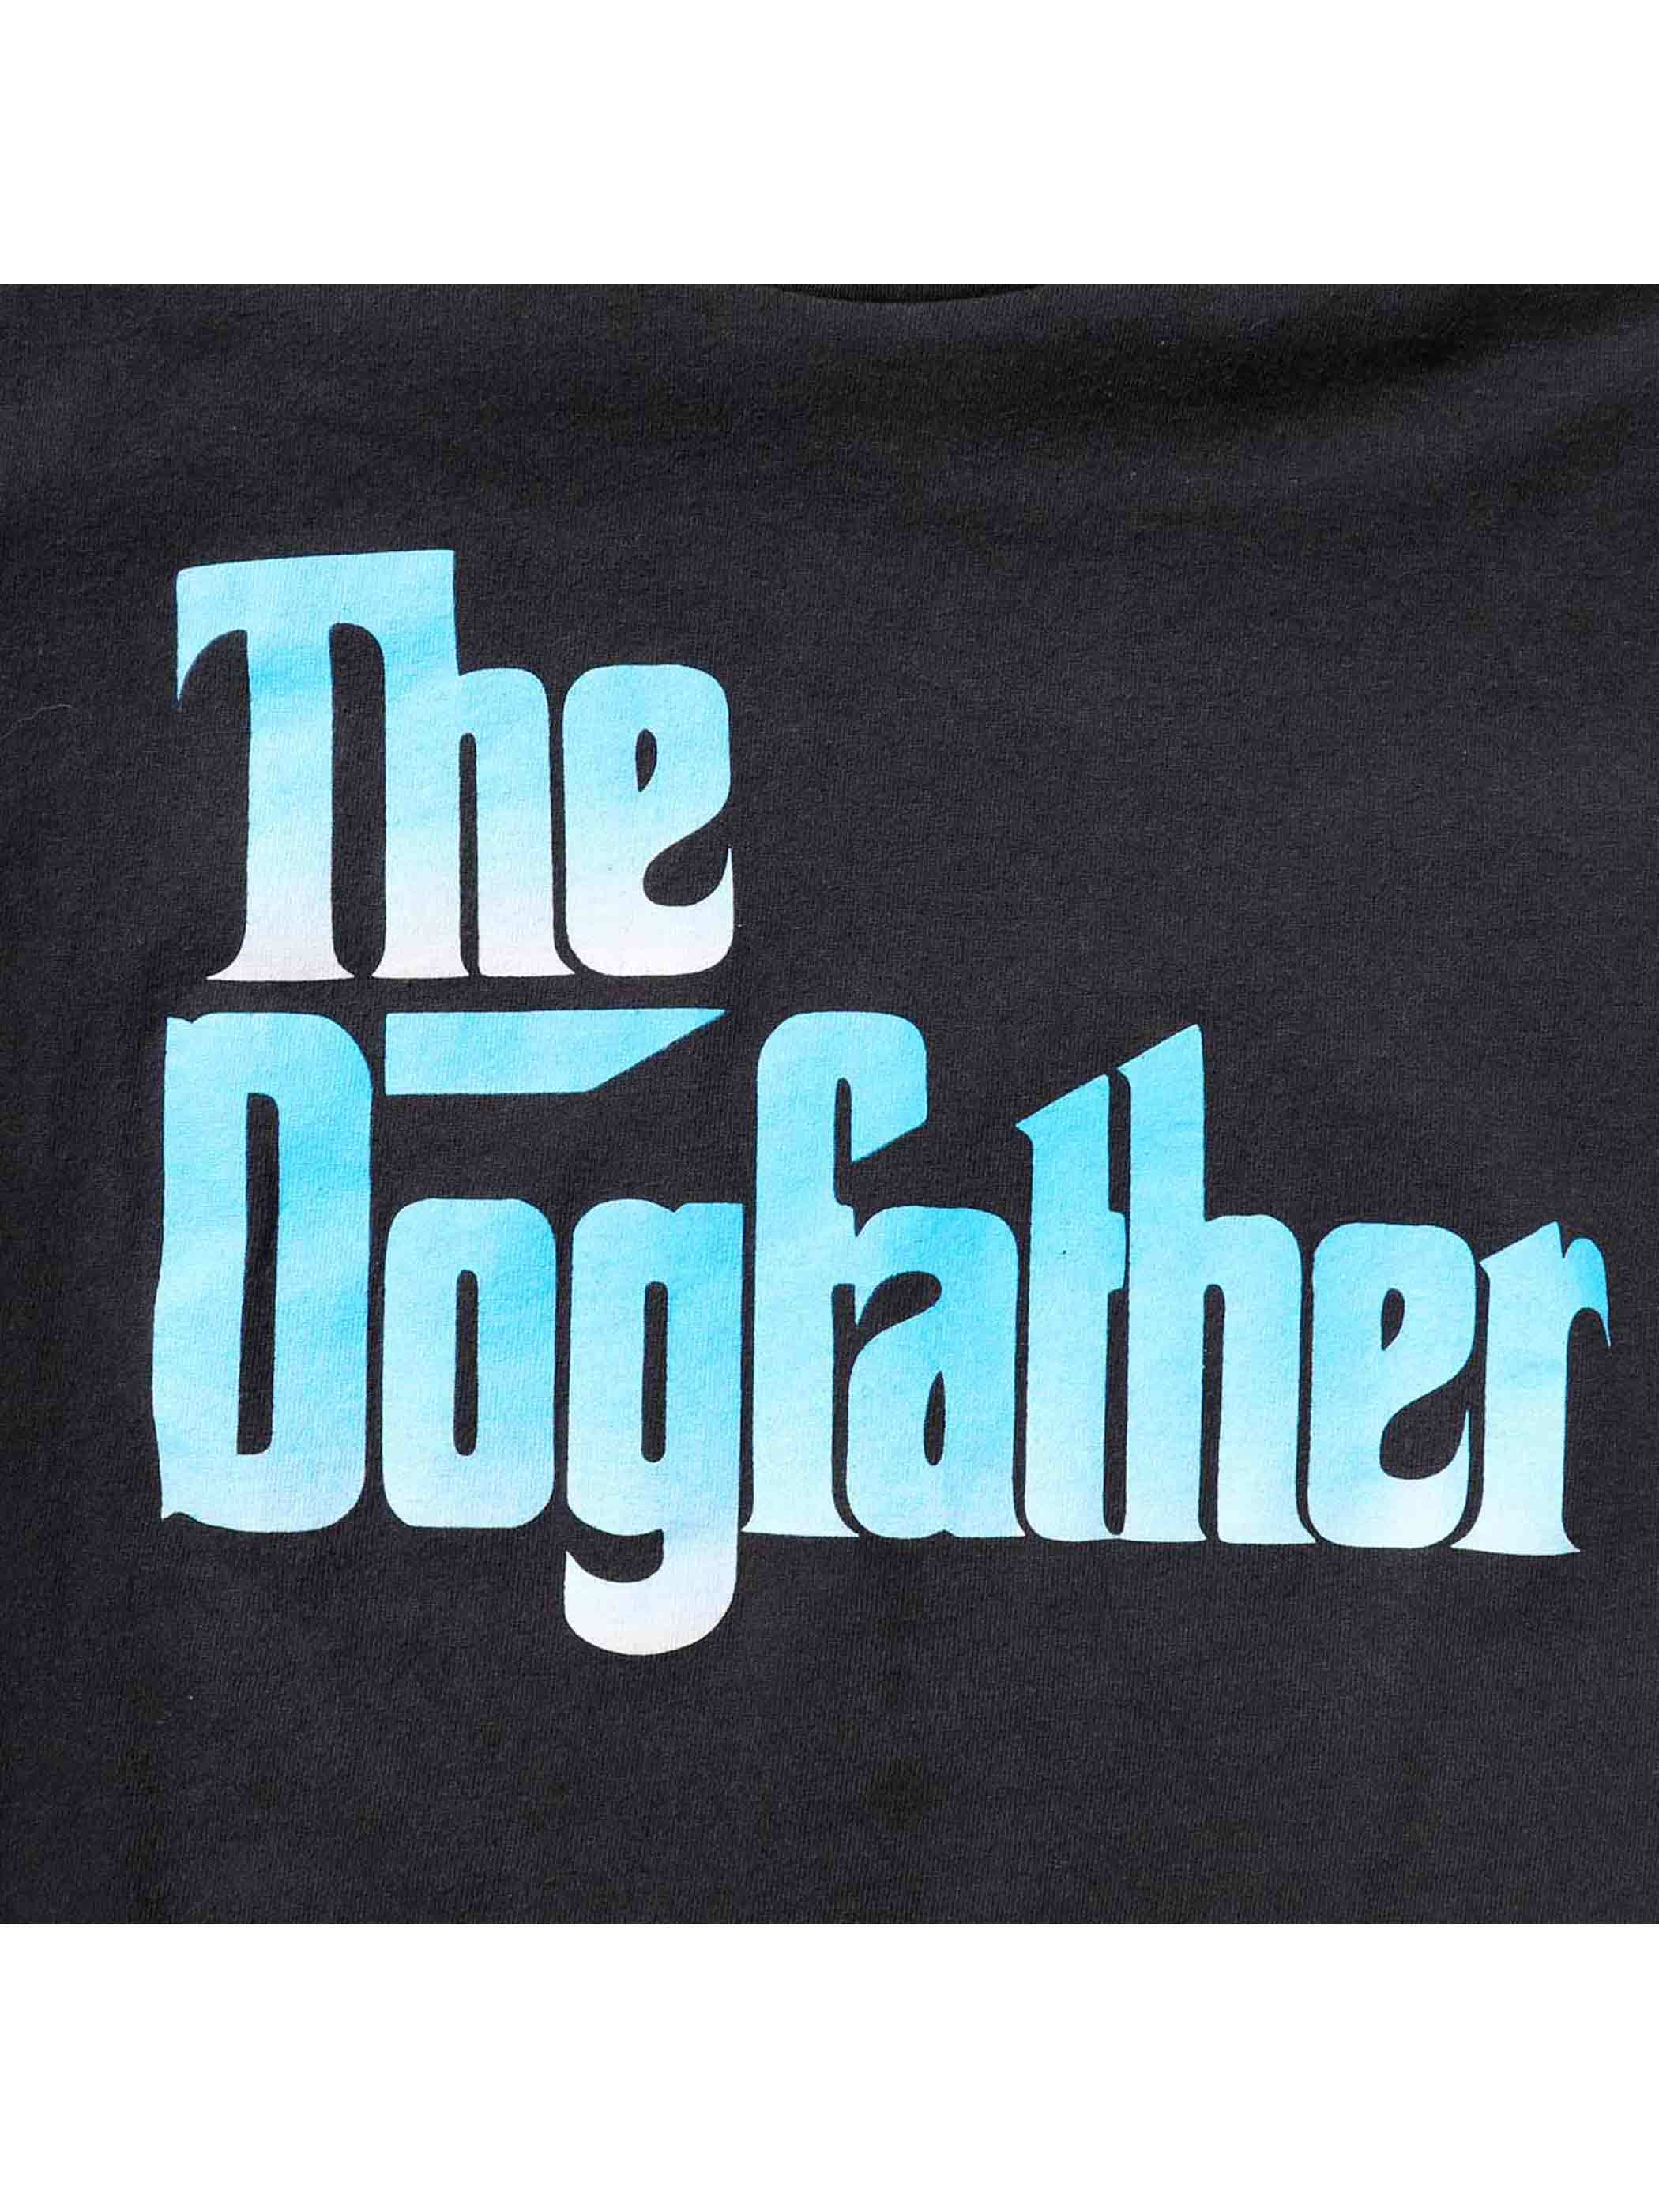 00's THE DOGFATHER Tシャツ [L]